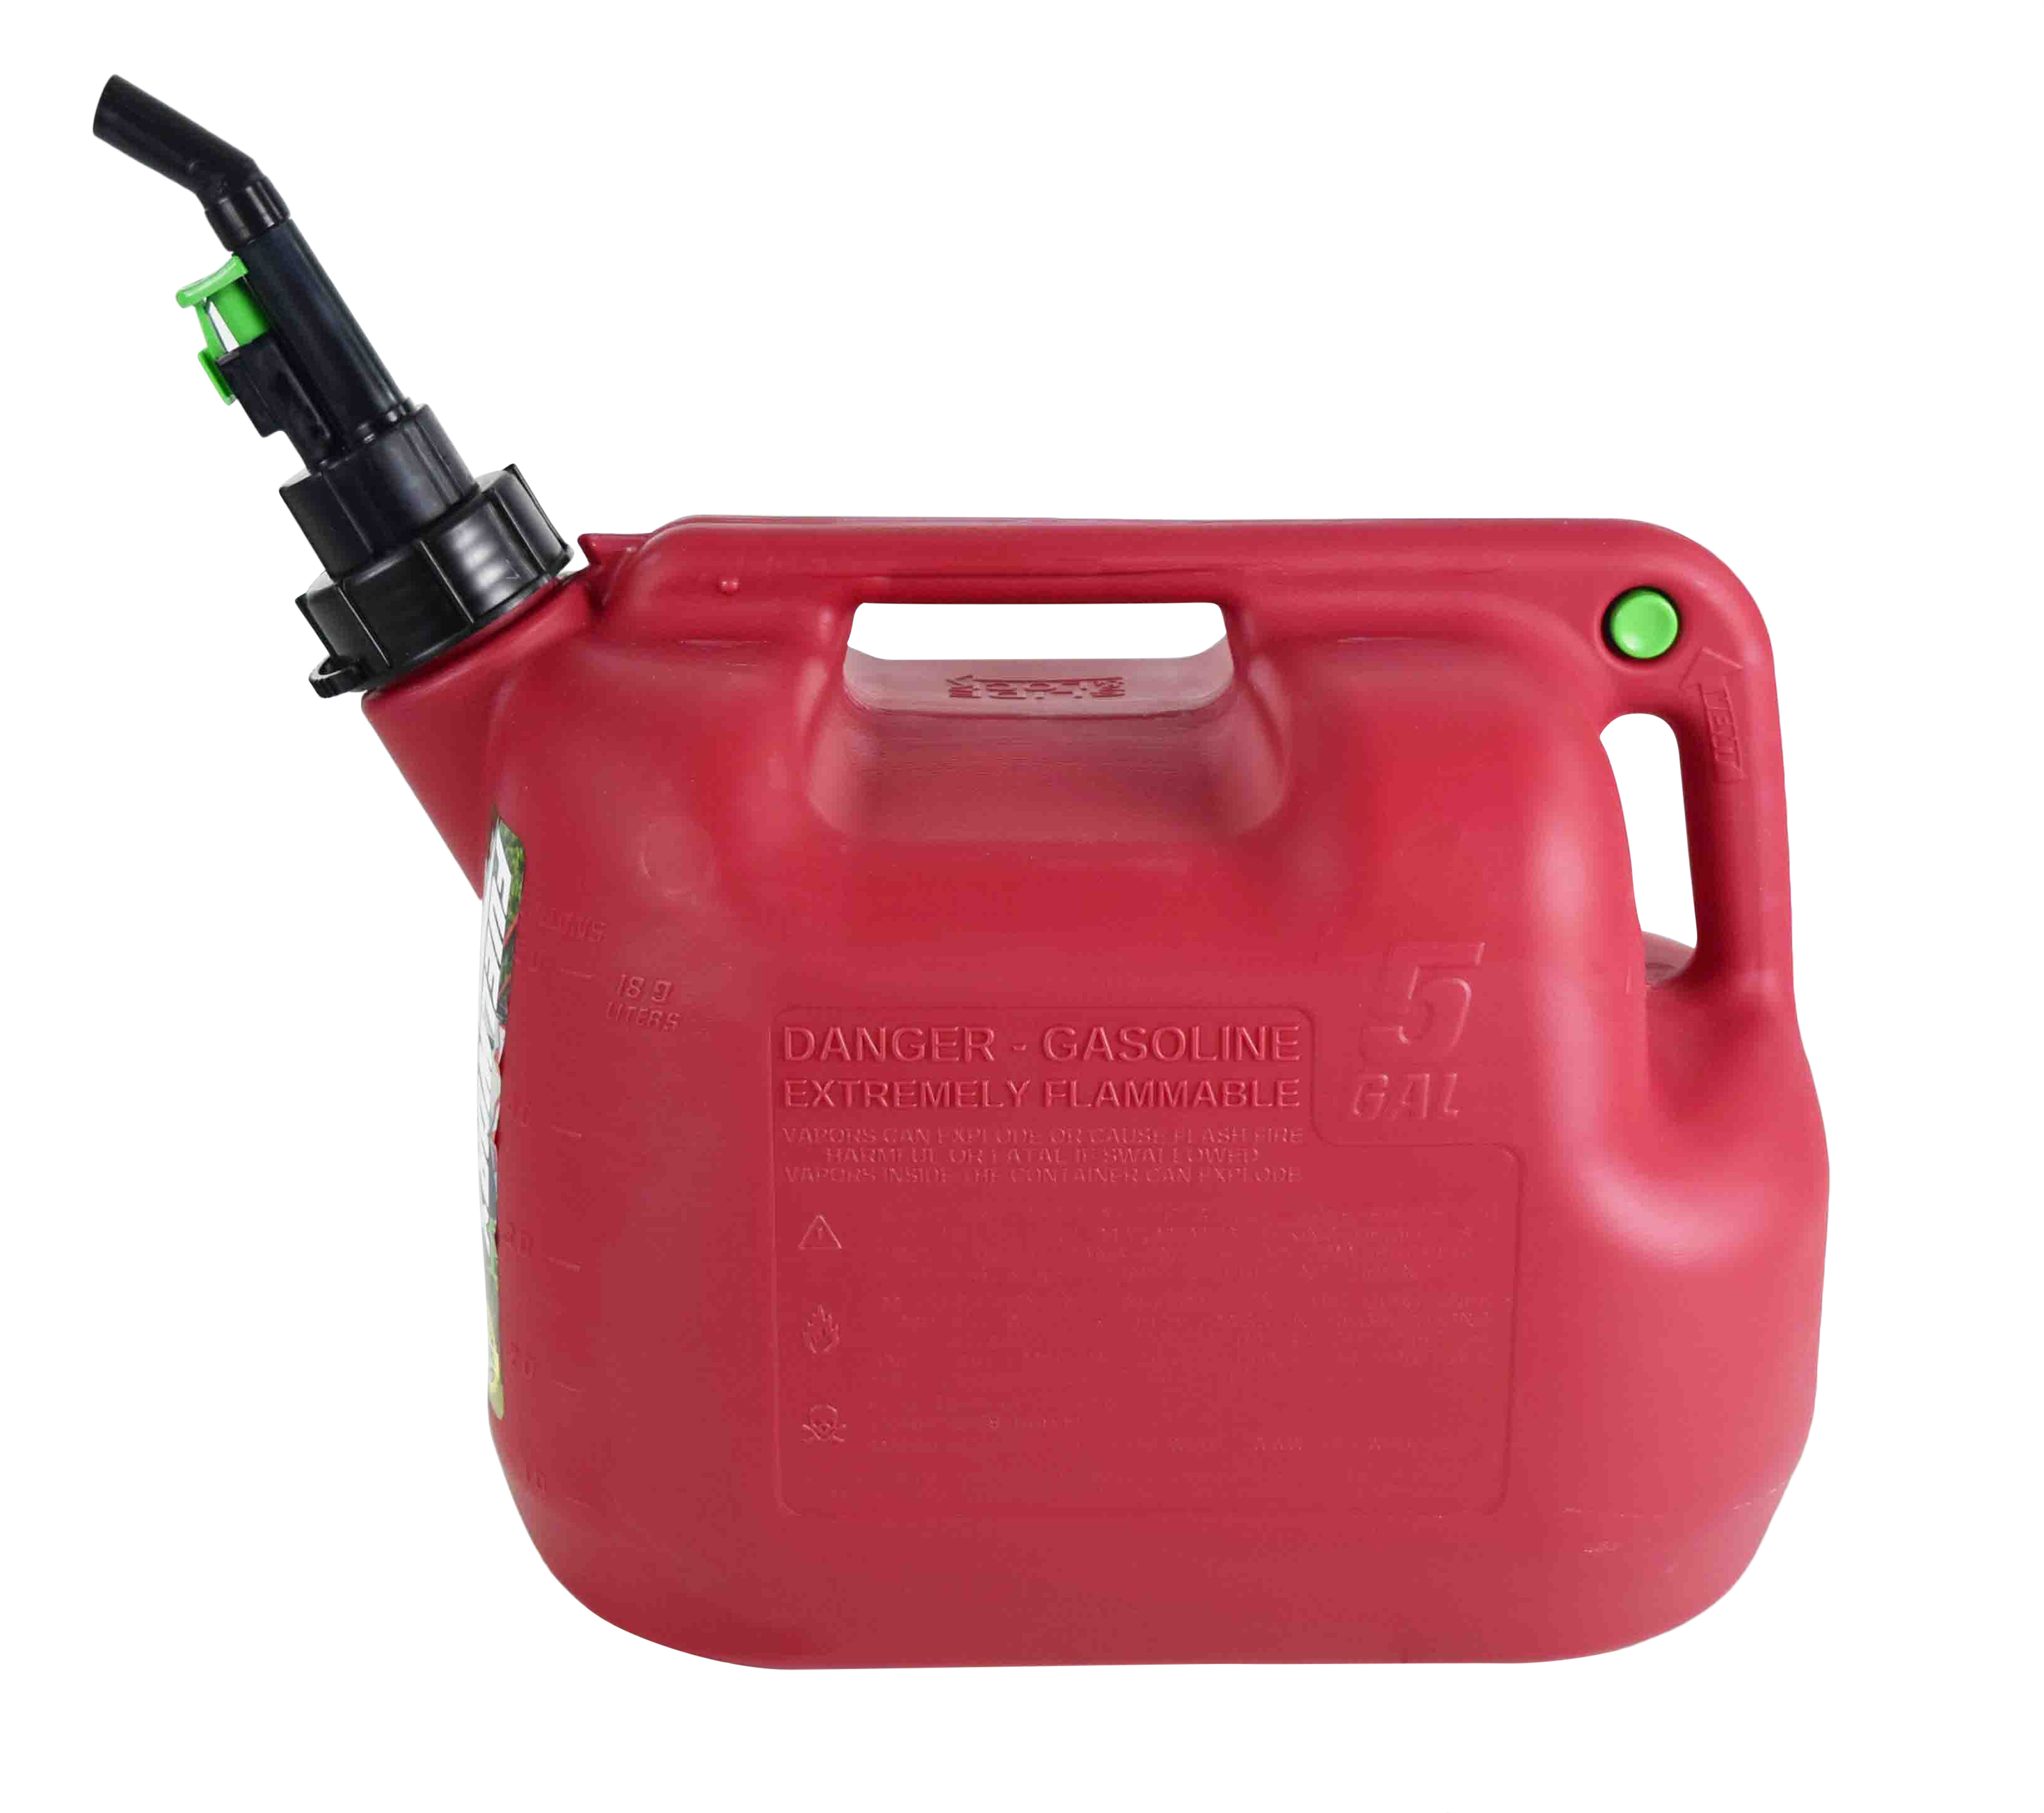 Fuelworx-Red-5-Gallon-Stackable-Fast-Pour-Gas-Fuel-Can-CARB-Compliant-Made-in-The-USA-5-Gallon-Gas-Can-3-Pack-image-4